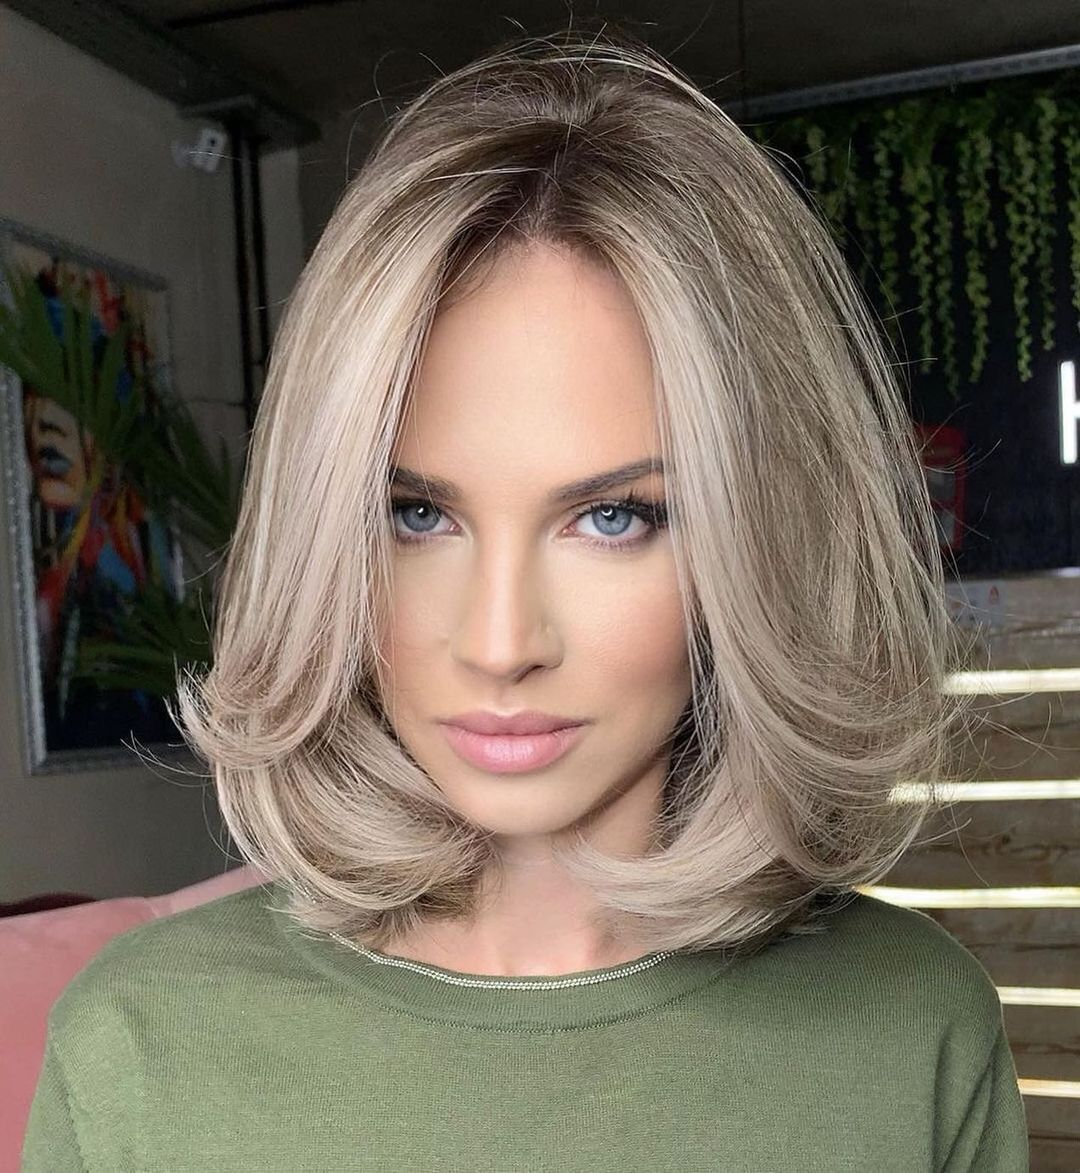 Haircut with Swoopy Layers for Big Foreheads